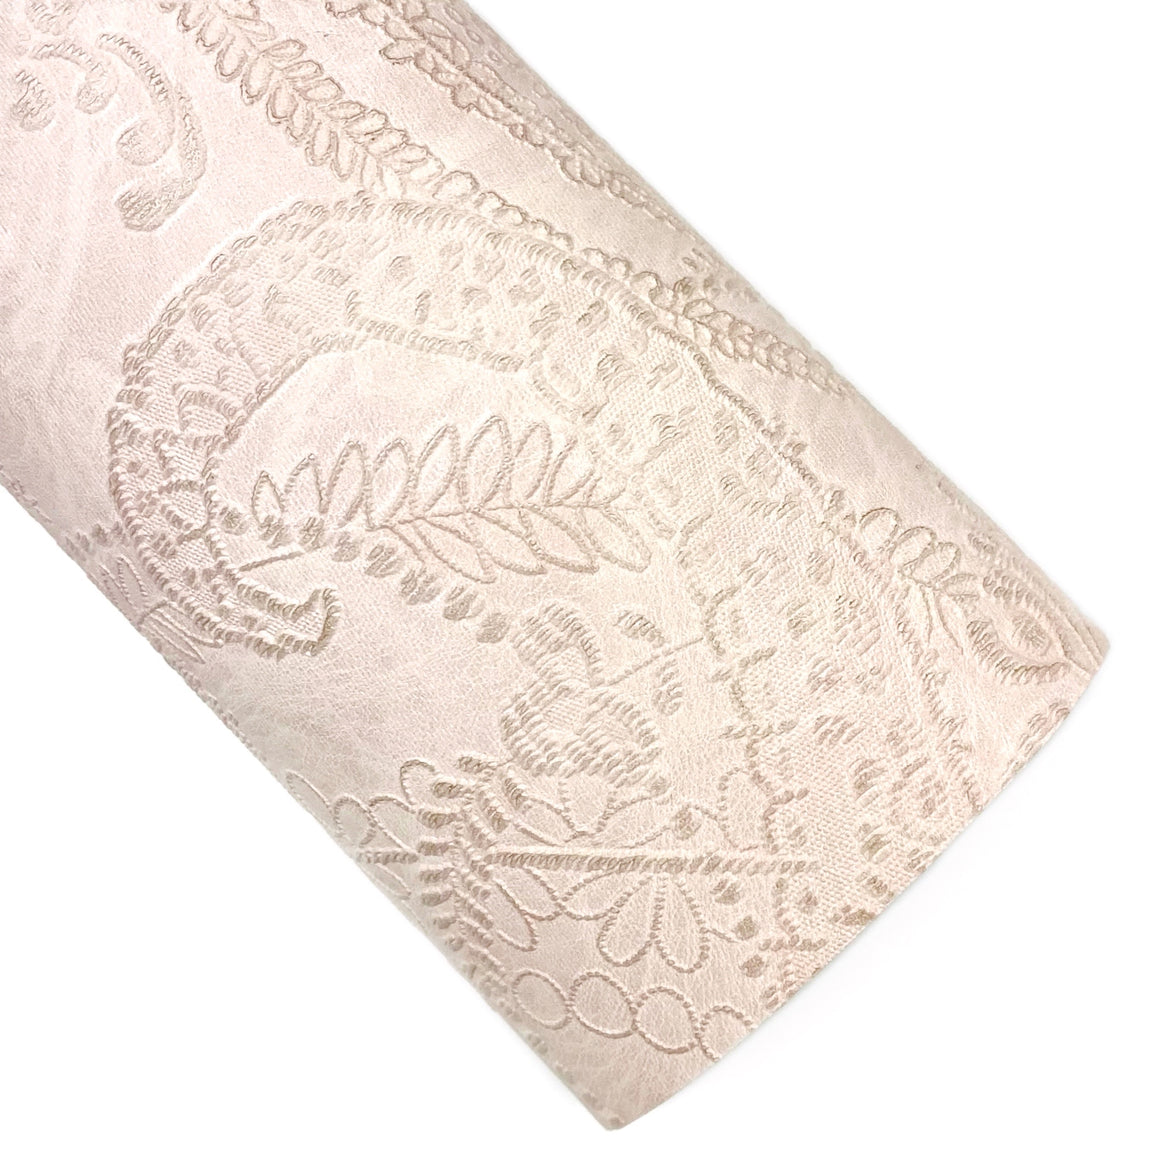 Blush Applique Lace Embossed Vegan Leather